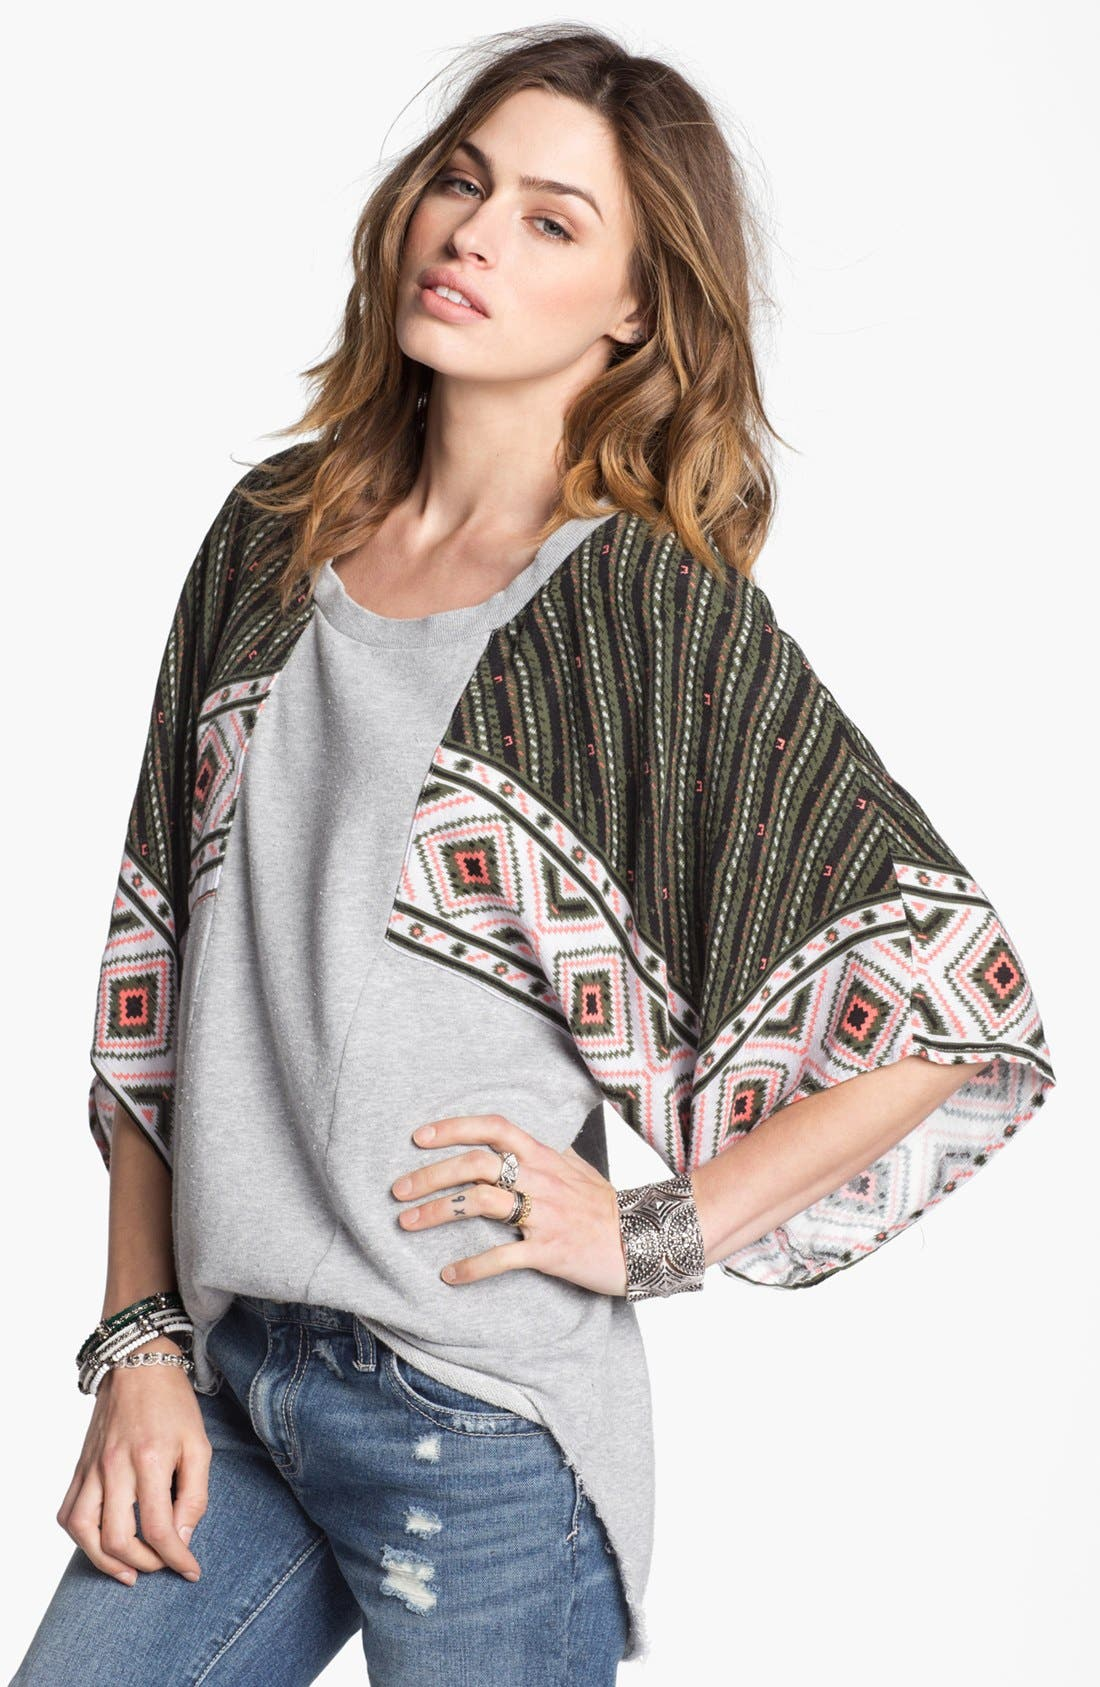 Alternate Image 1 Selected - Free People 'Festival' Mixed Media Sweatshirt